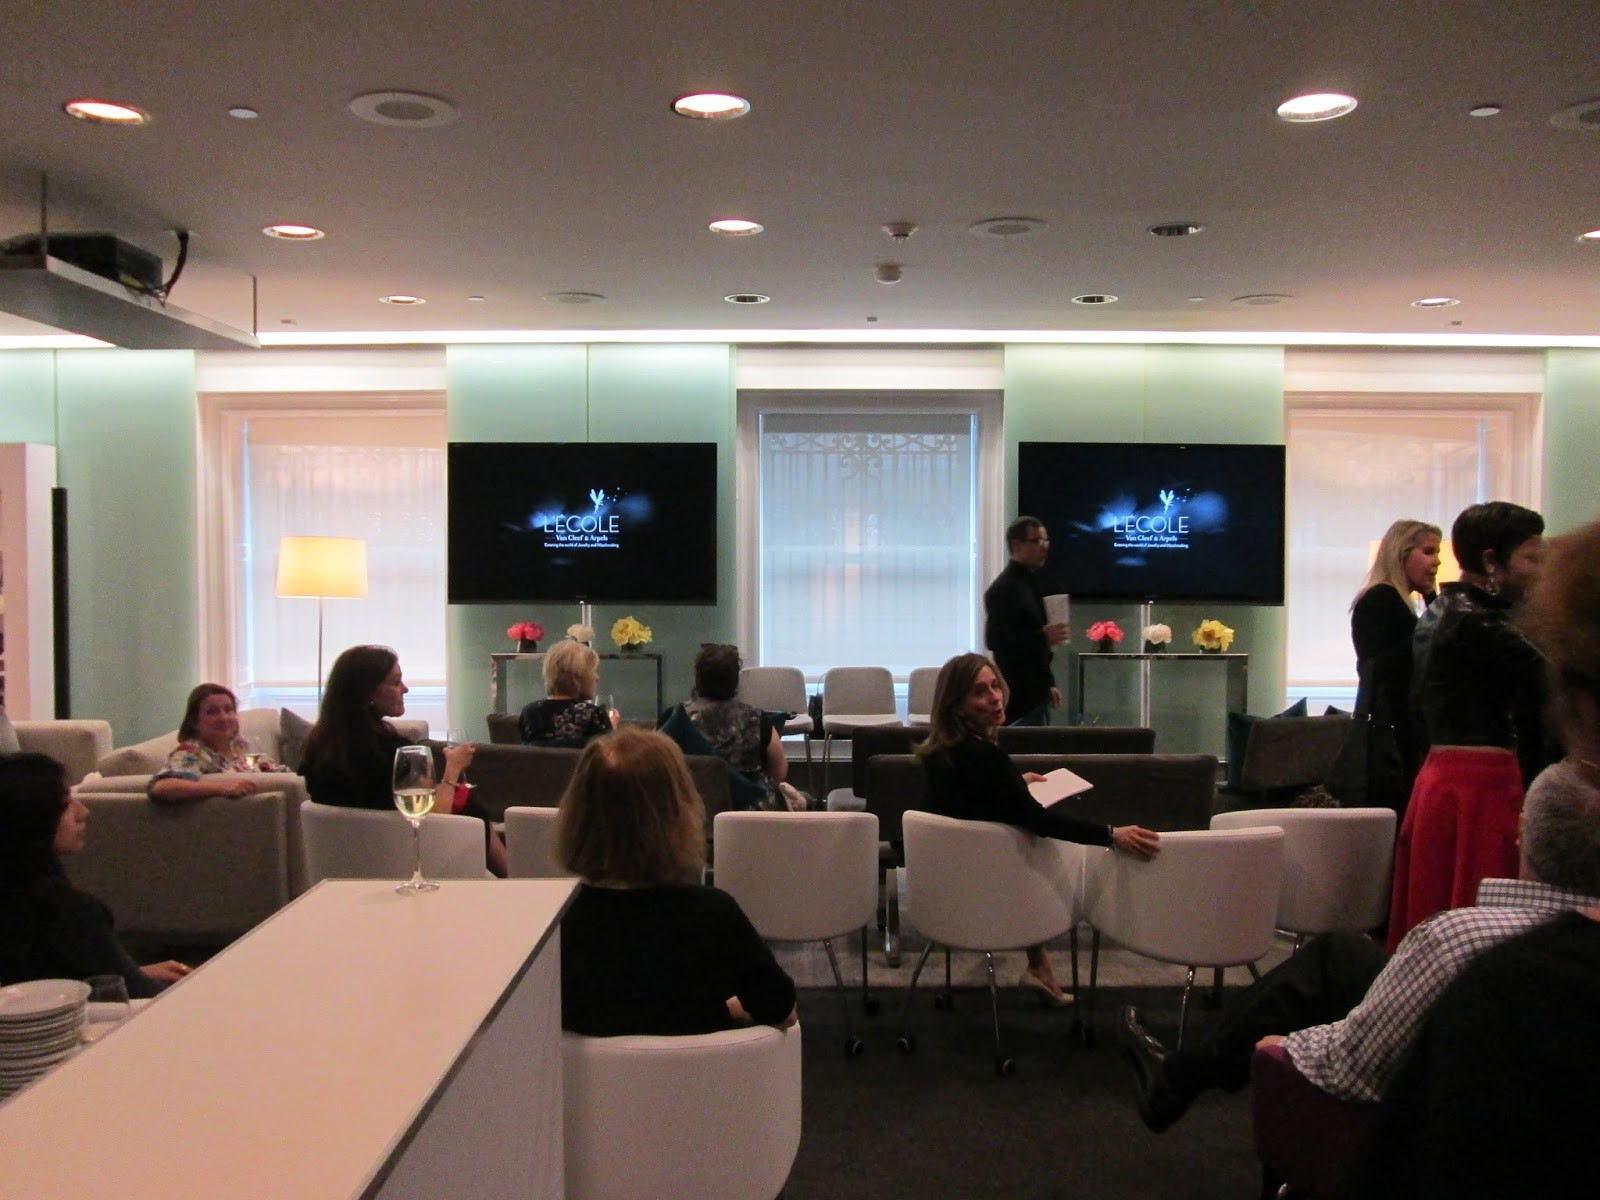 Photo #16 Lecture Room at Tarallucci e Vino at Cooper Hewitt - Smithsonian Design Museum